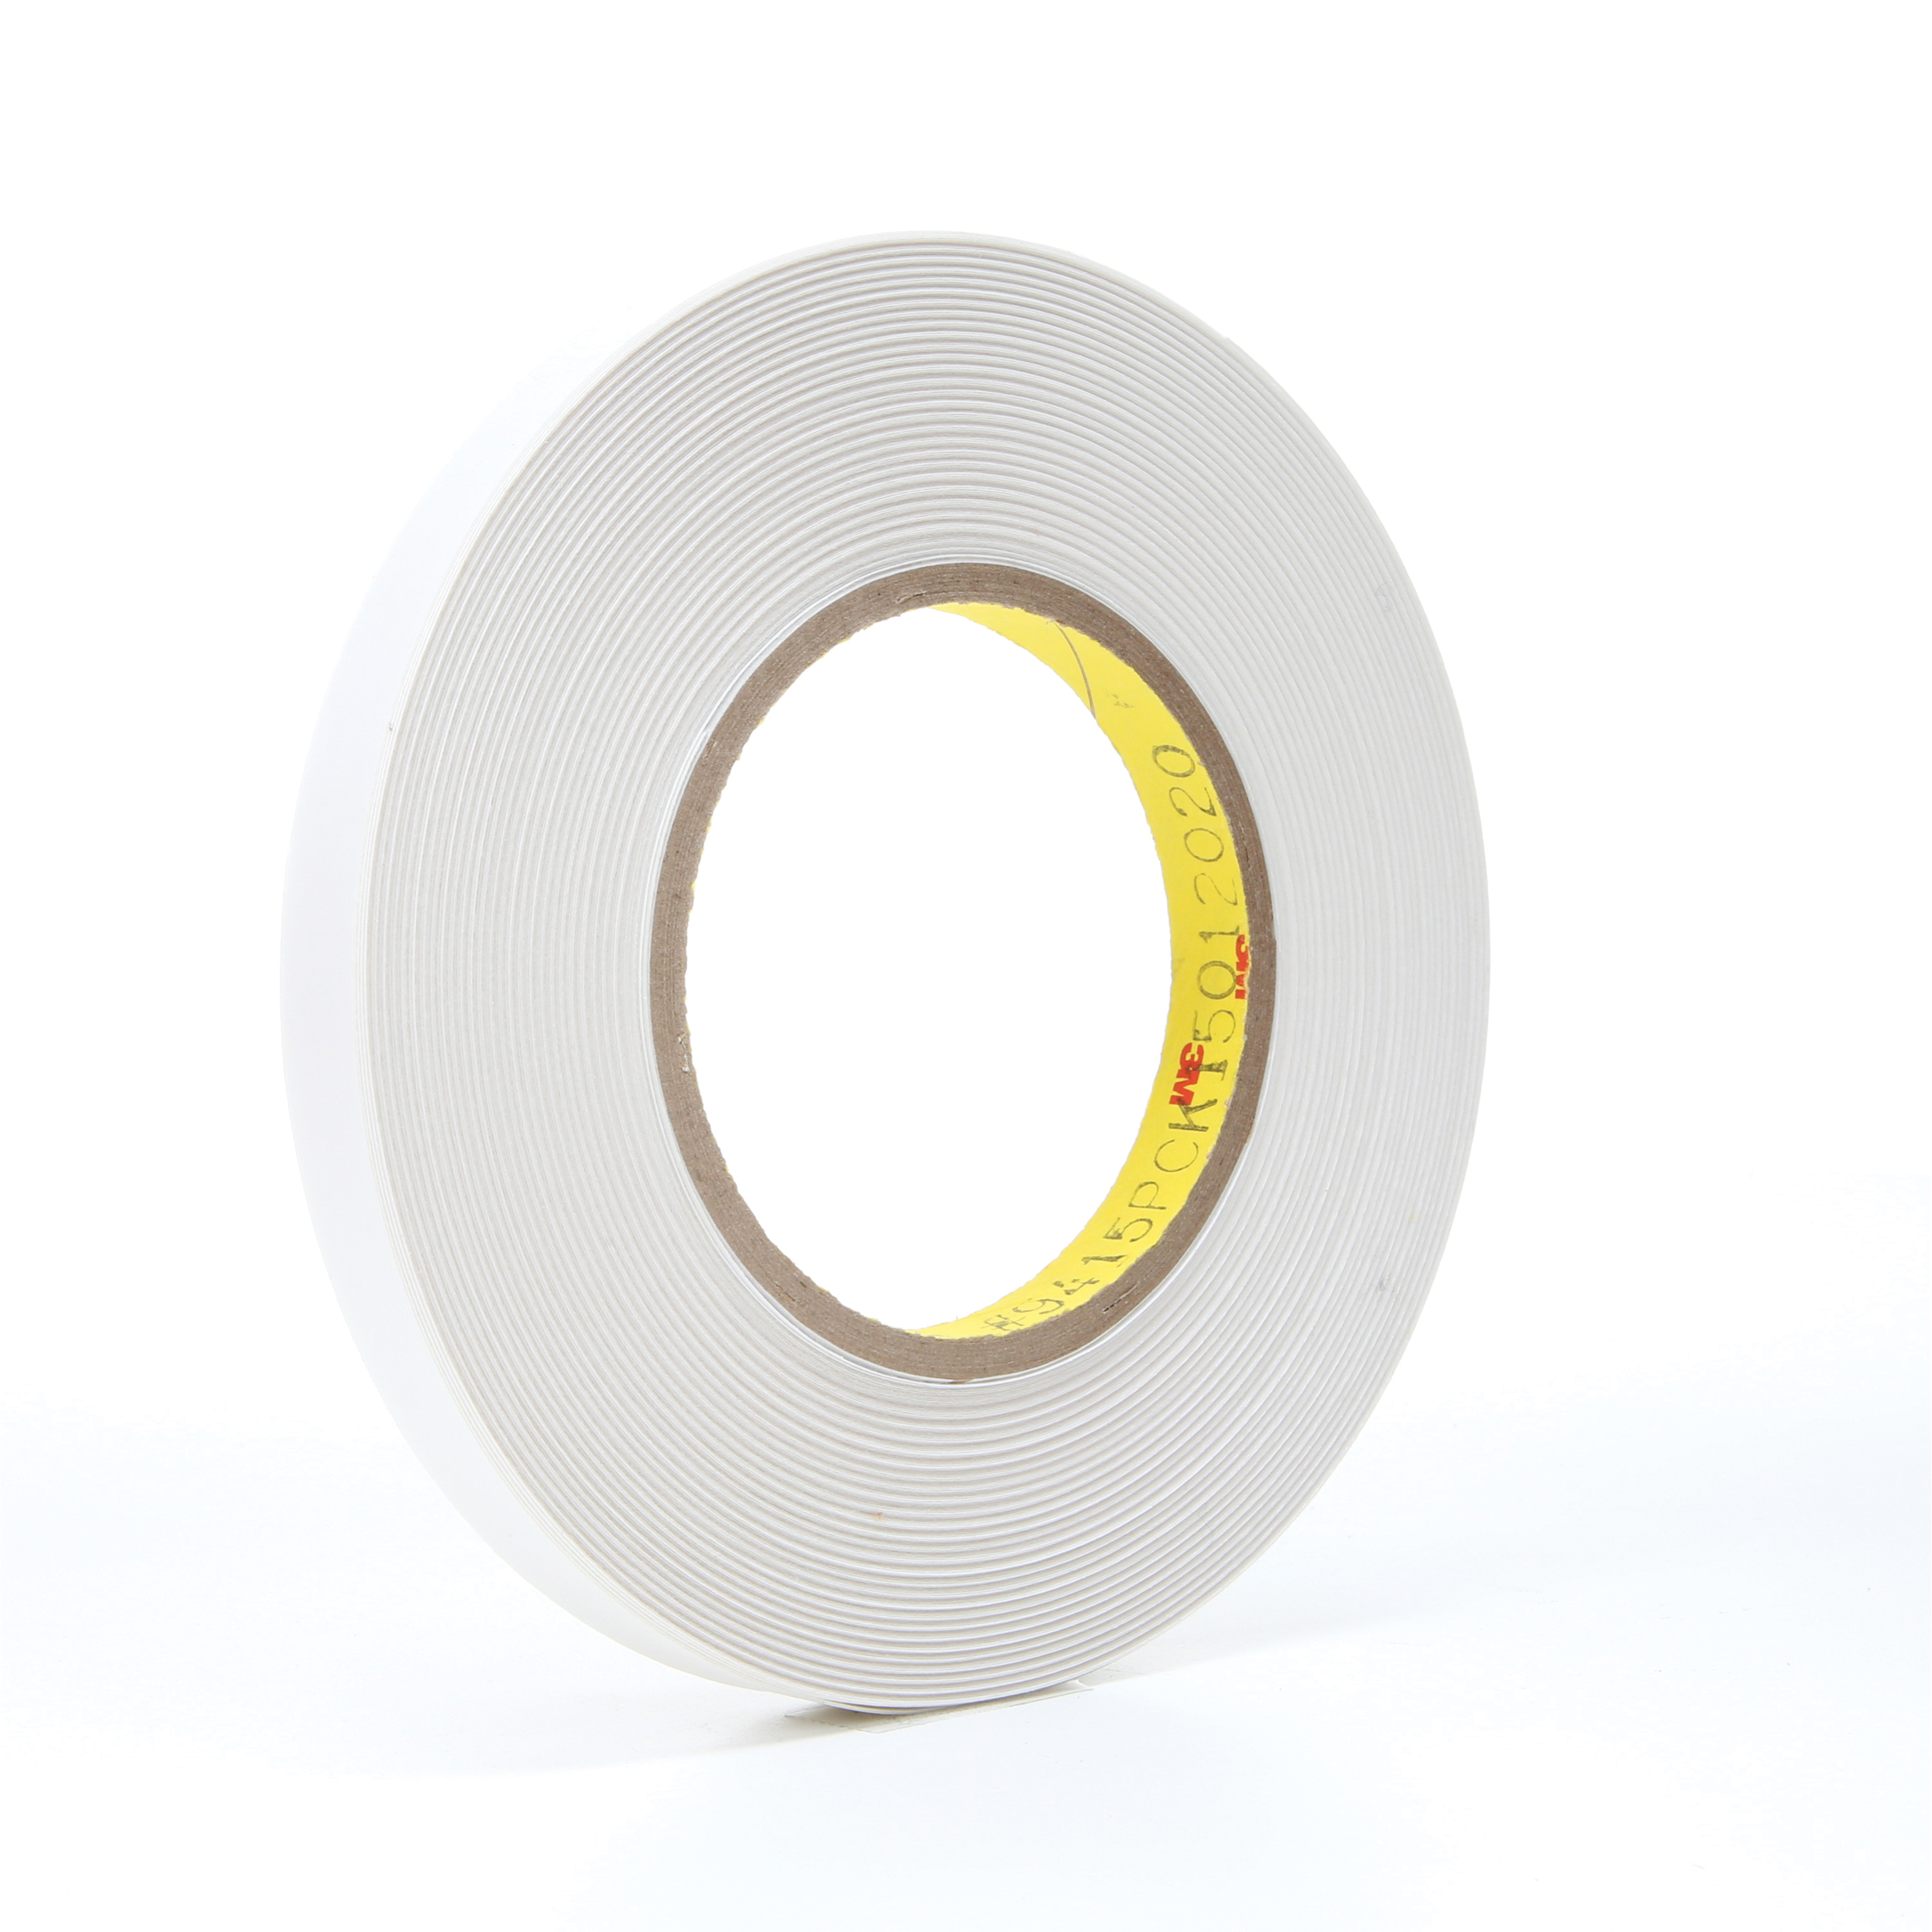 3M™ 021200-14536 Removable Repositionable Tape, 72 yd L x 1/2 in W, 7.6 mil THK, 0.5 mil 400 Acrylic Adhesive, Polyester Film Backing, Clear